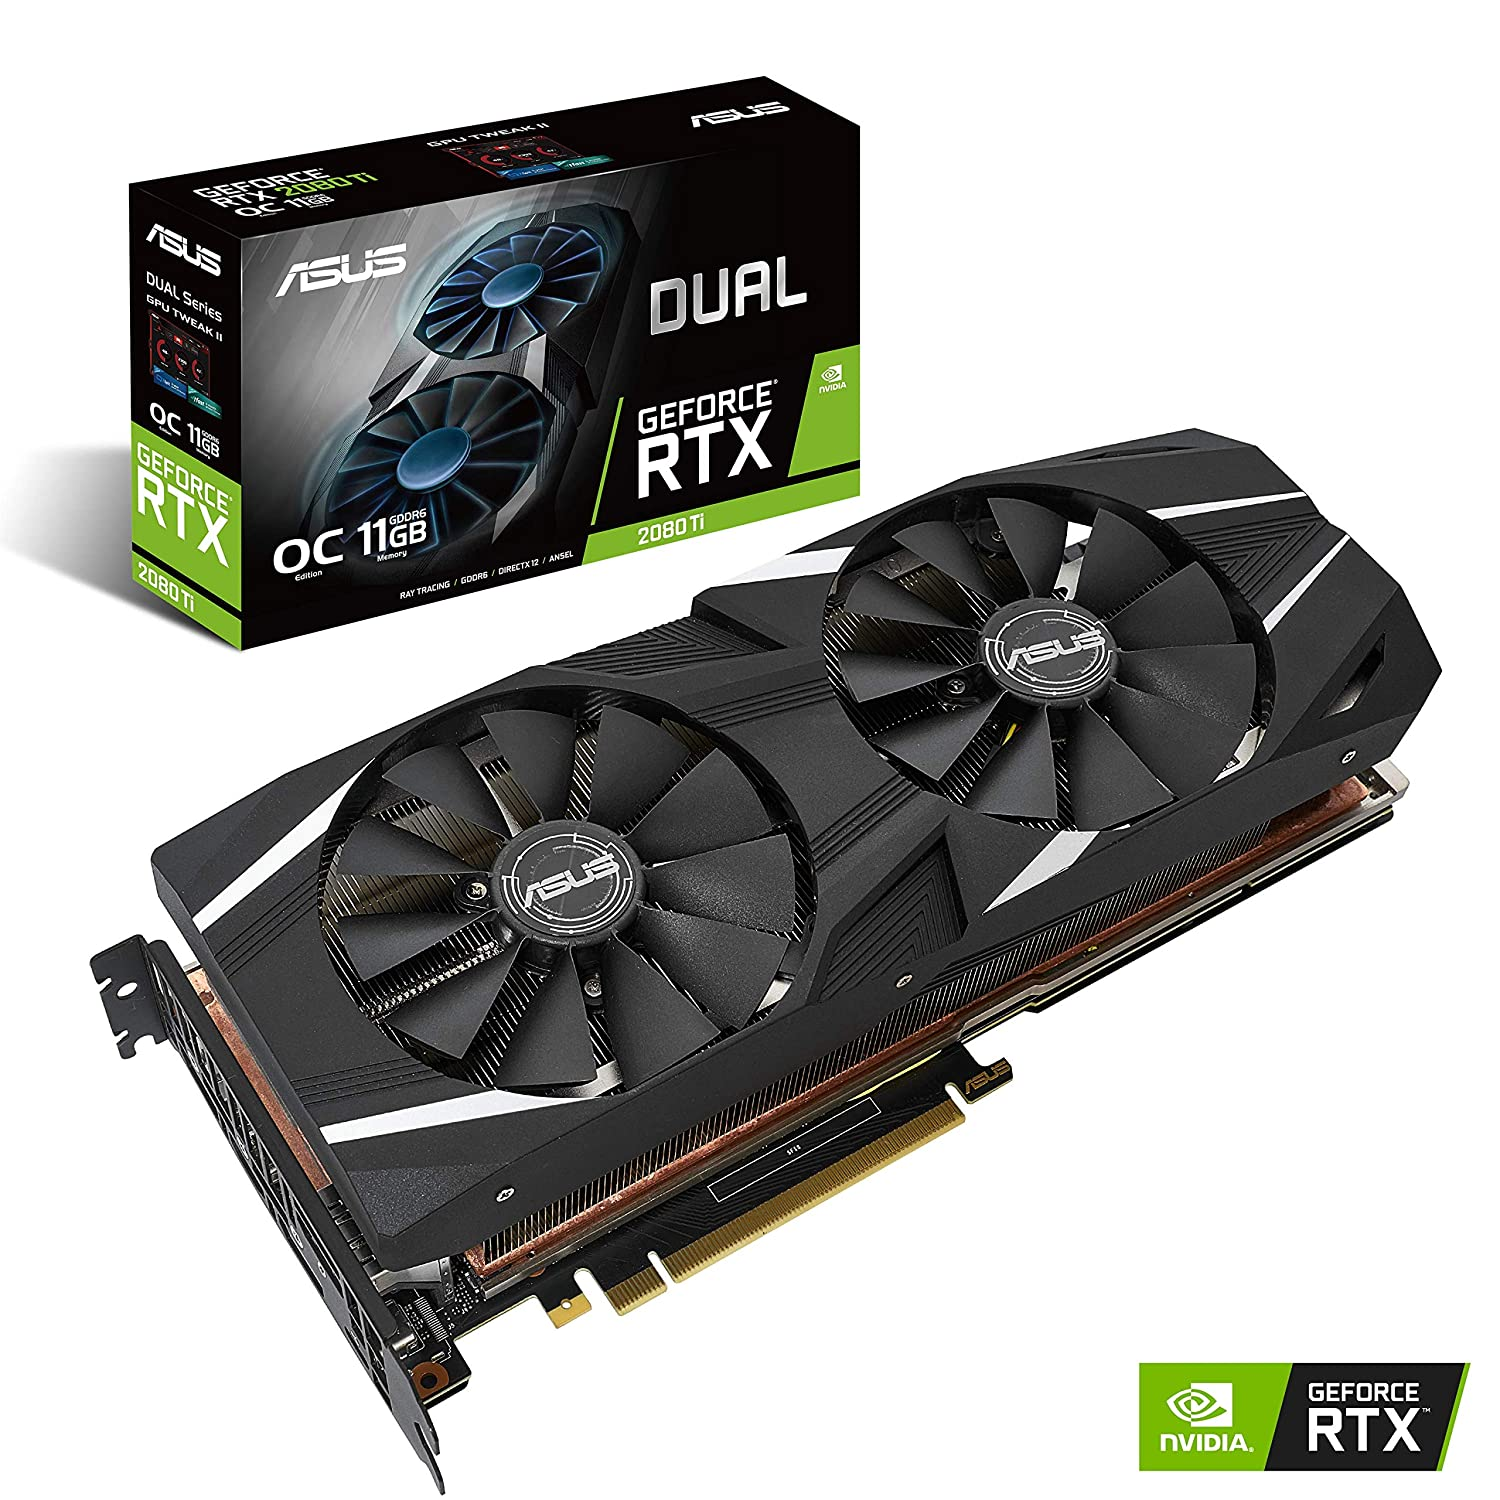 ASUS GeForce RTX 2080 Ti O11G Dual-fan OC Edition GDDR6 HDMI DP 1 4 USB  Type-C graphics card (DUAL-RTX2080TI-O11G)